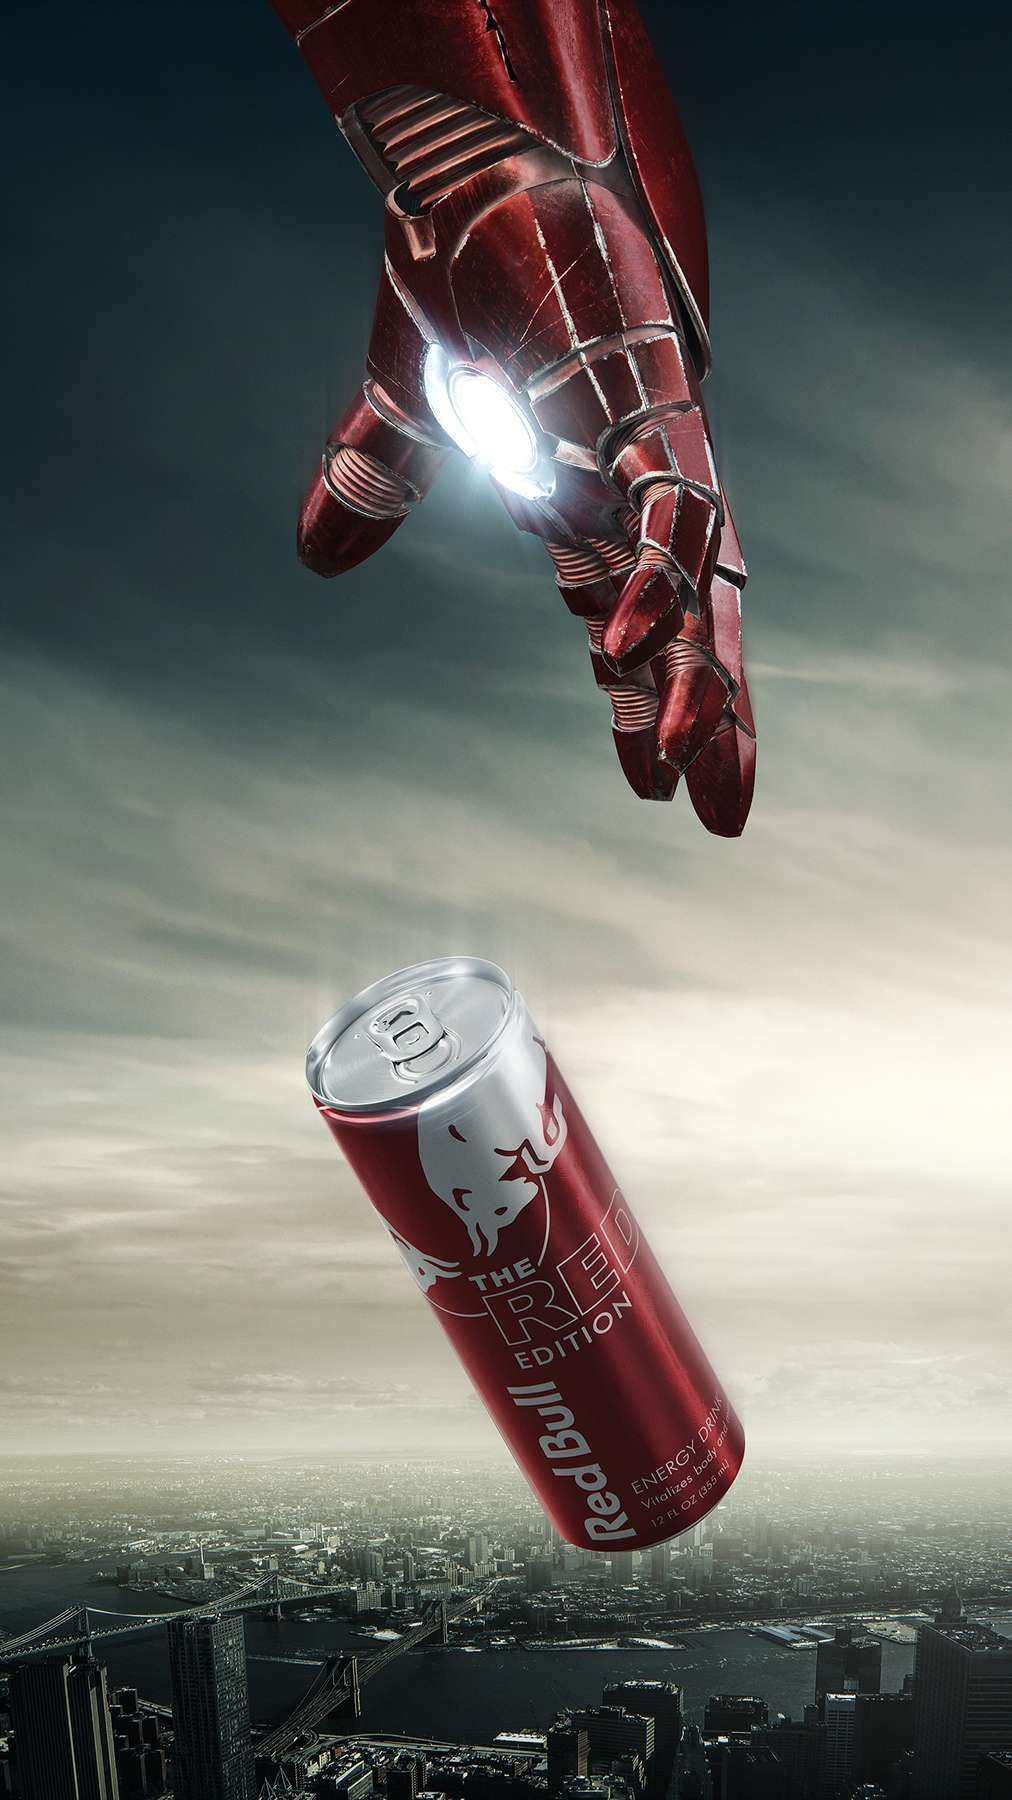 Avengers RedBull iPhone Wallpaper Advertising design